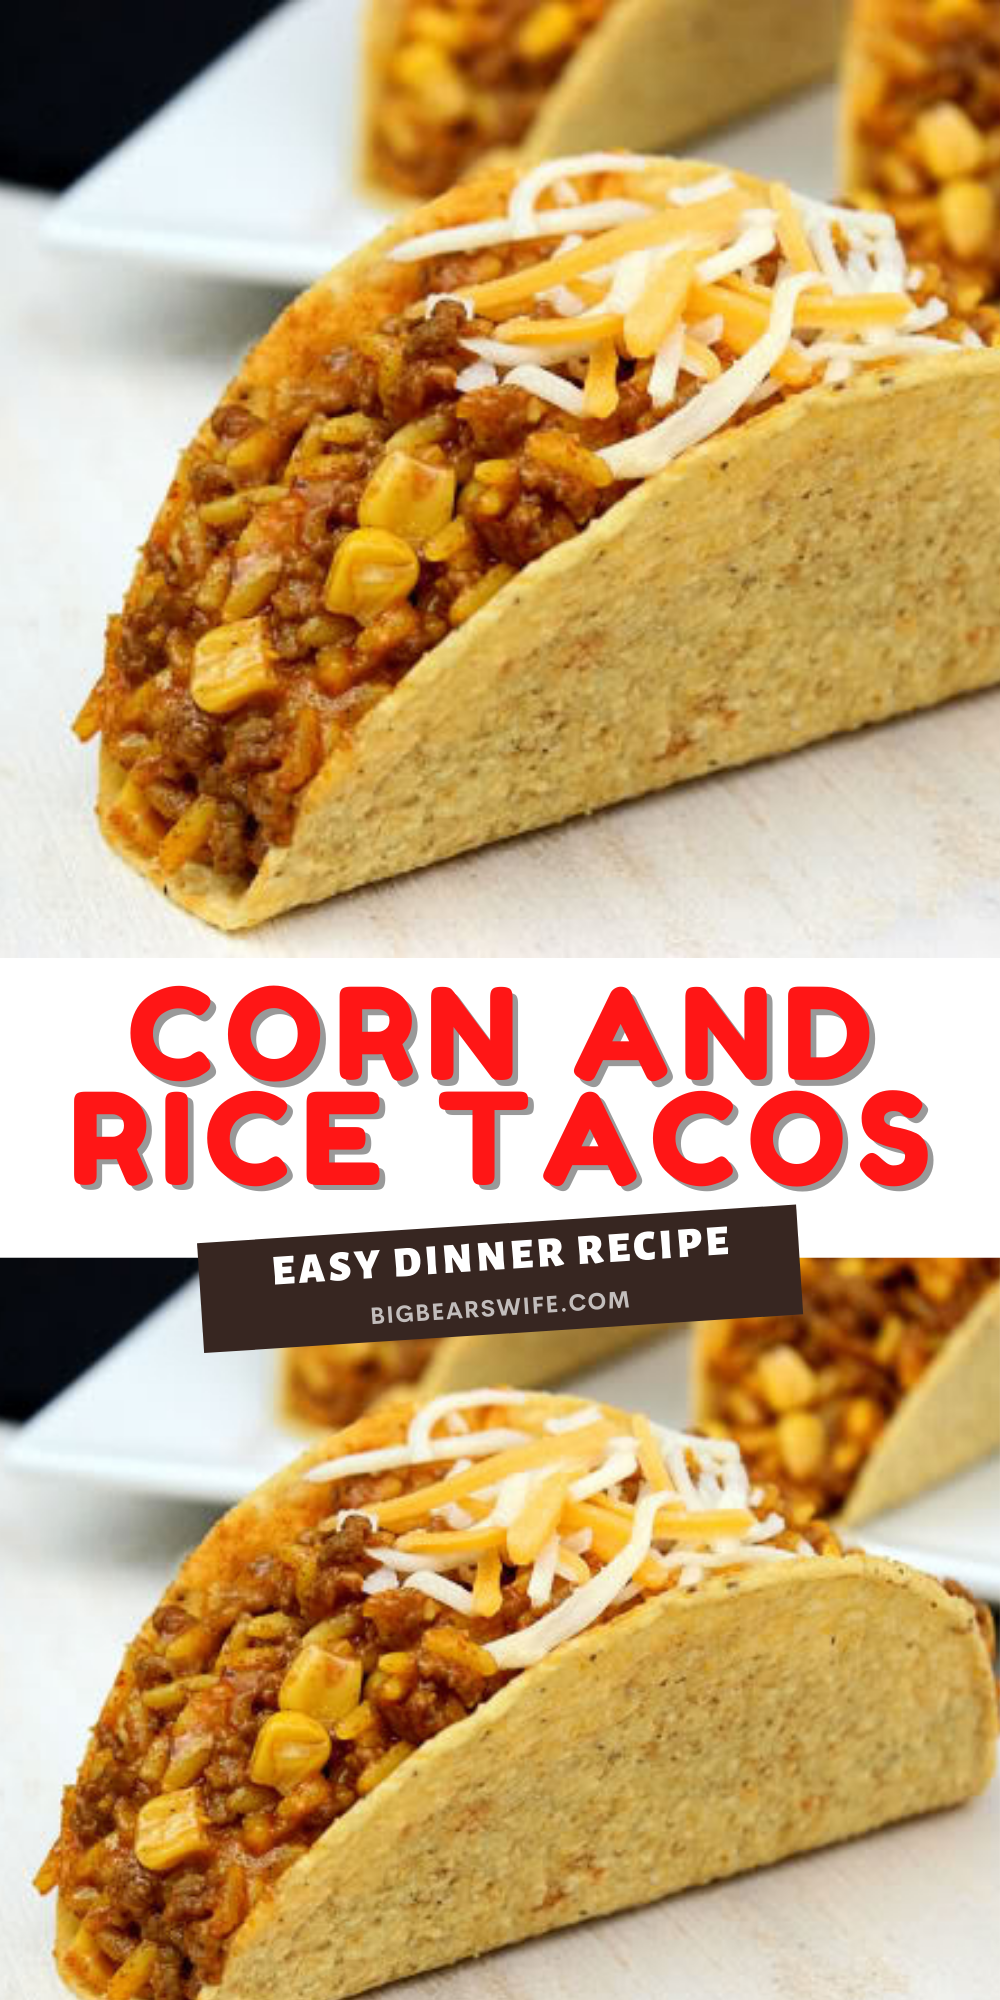 An easy dinner idea that's a favorite in our house! Corn and Rice Tacos are made of beef, taco mix, corn and cheese! Super simple and always delicious!  via @bigbearswife